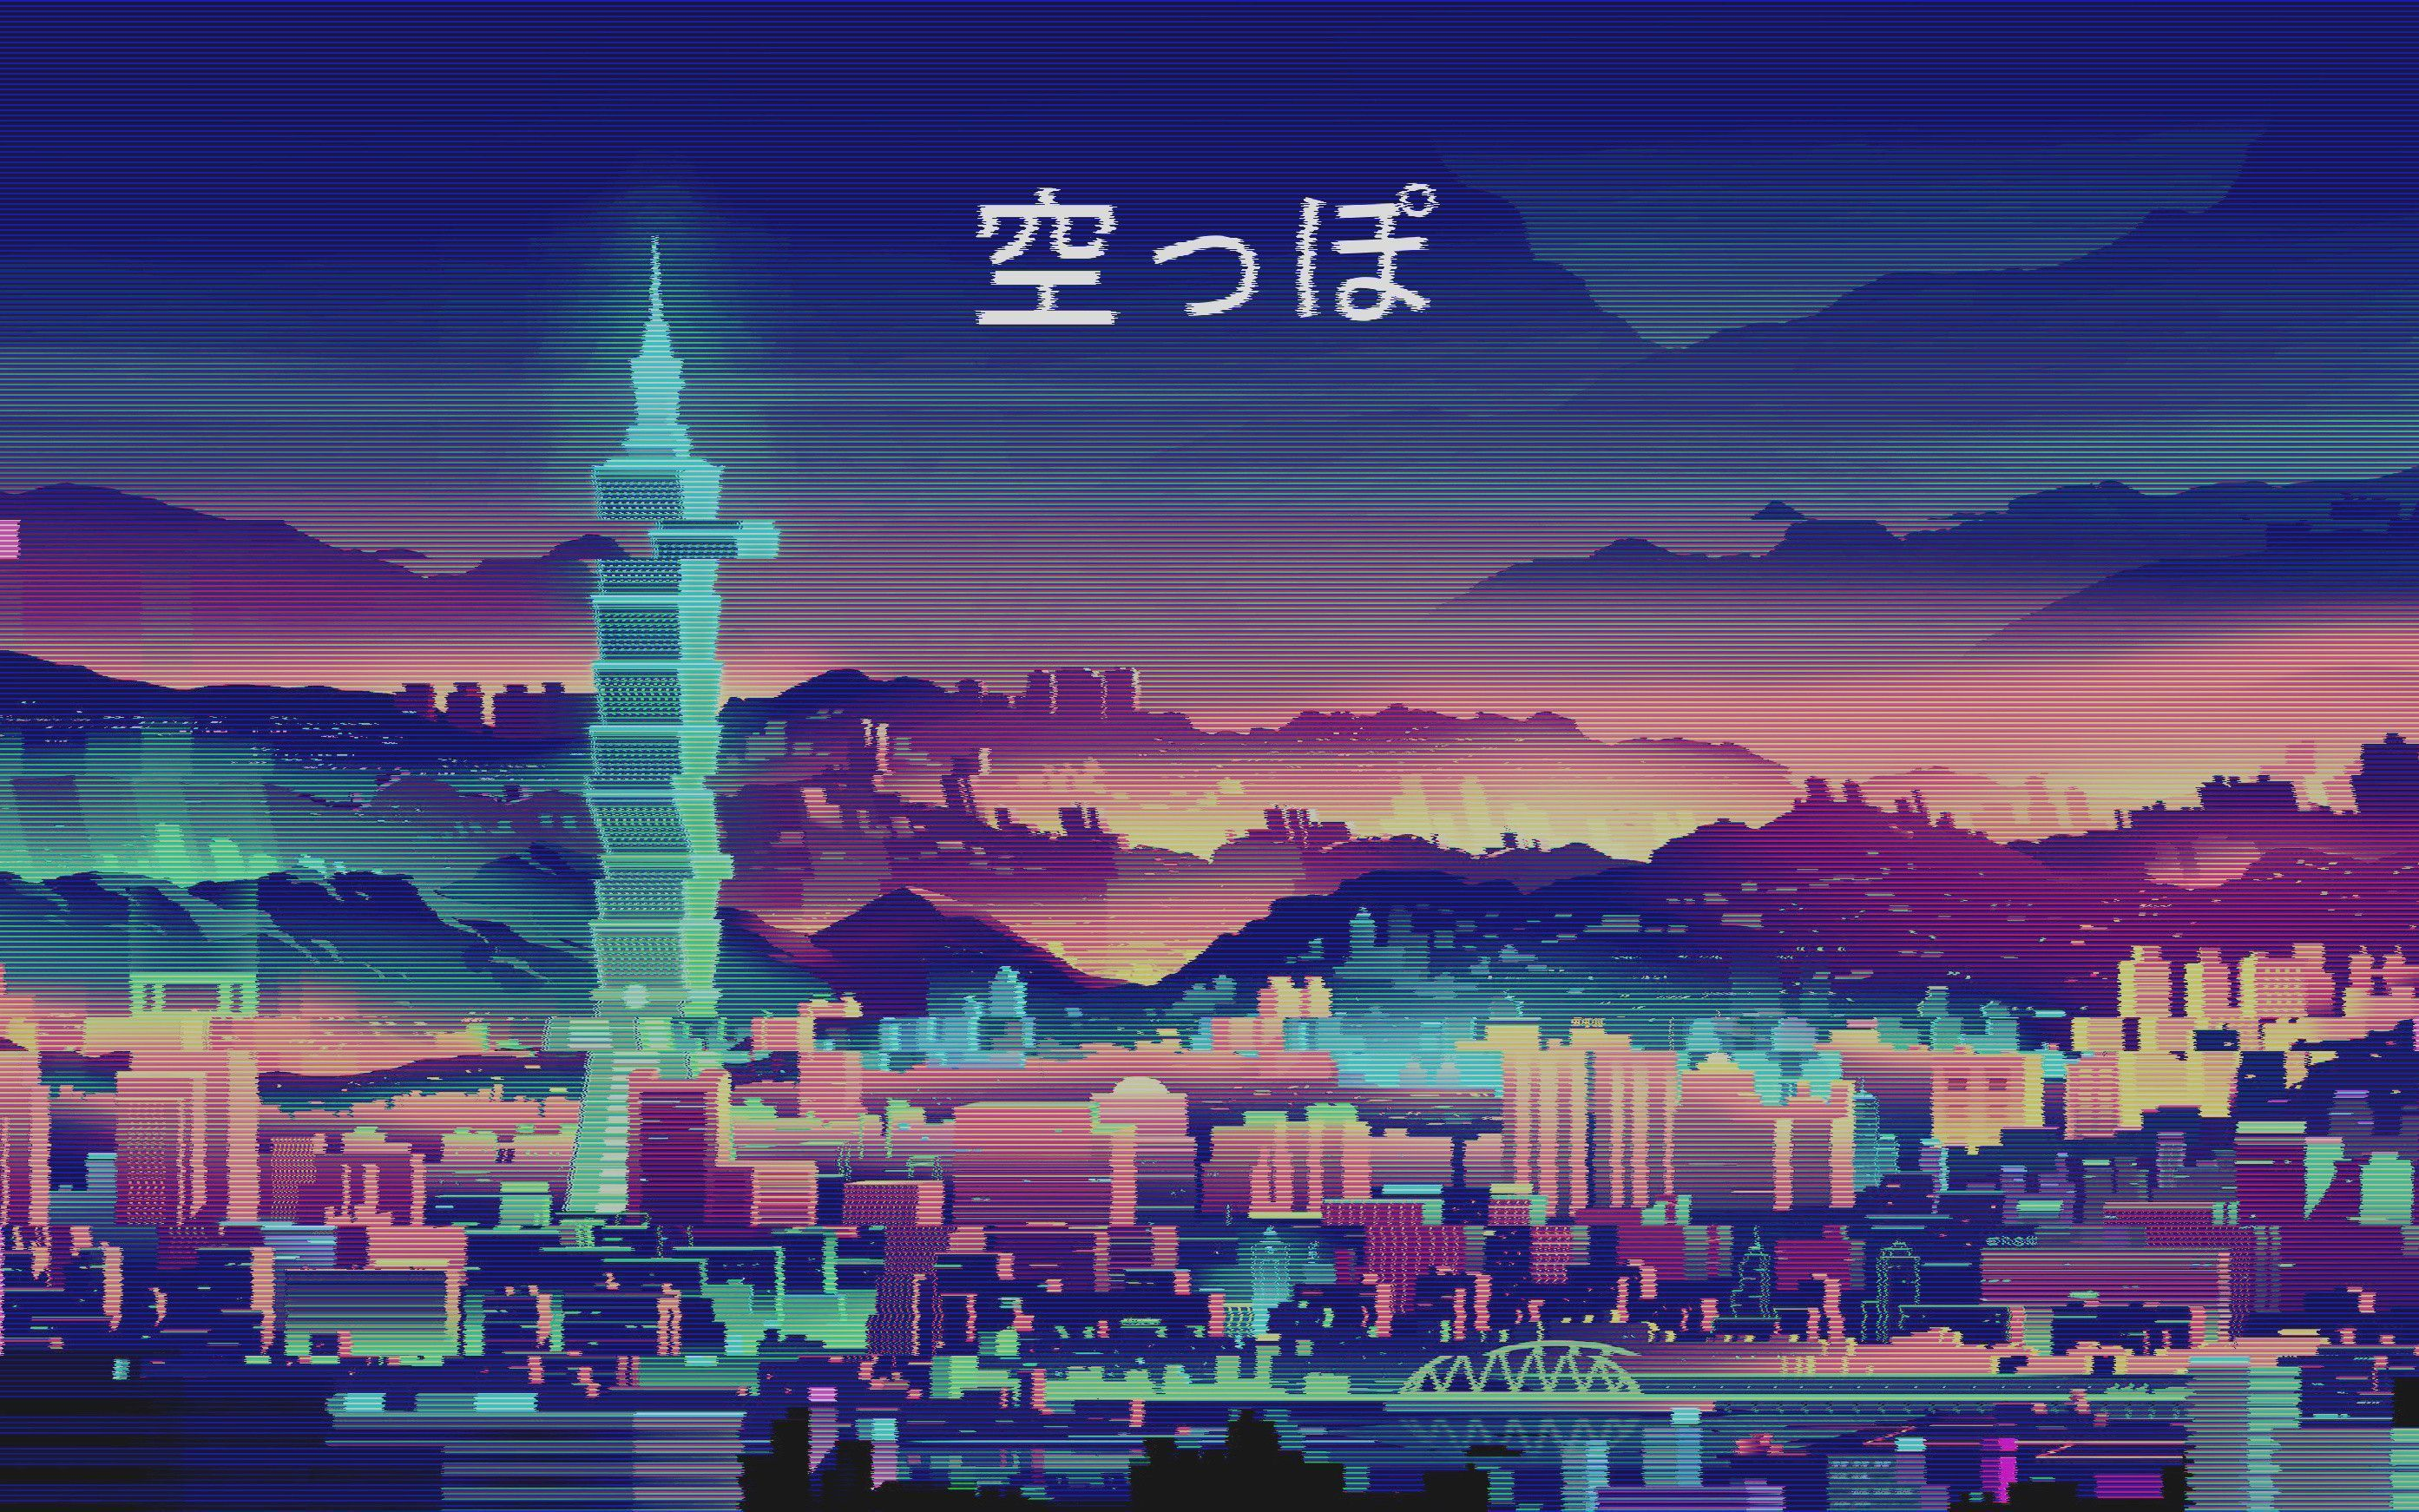 anime aesthetic city pc wallpapers